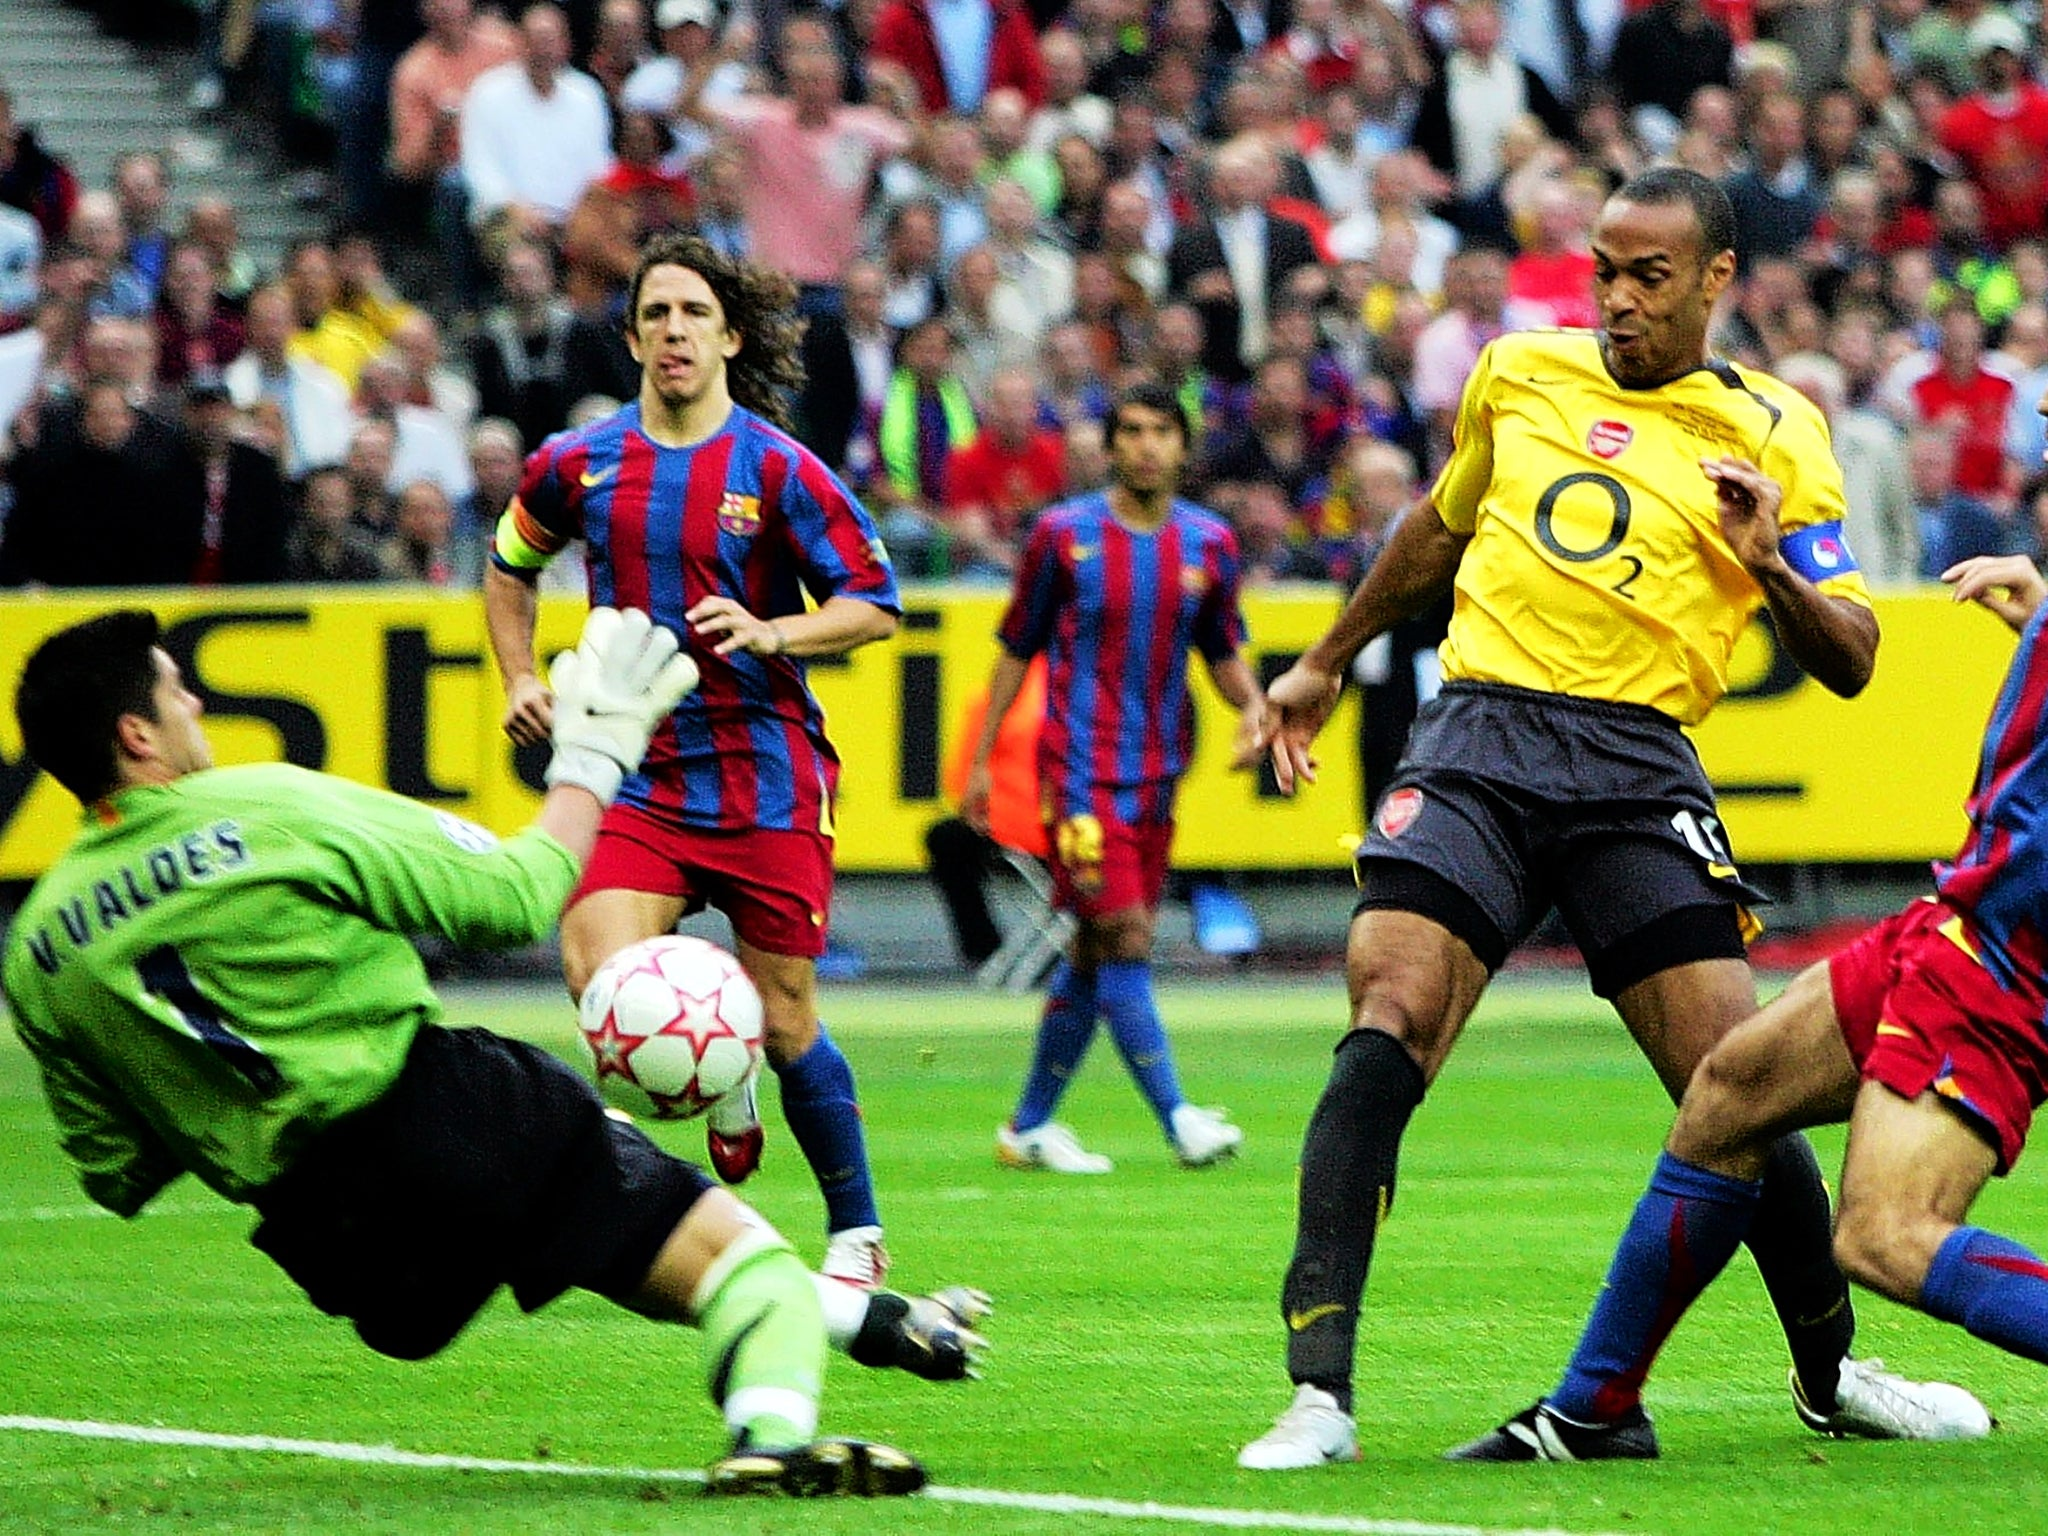 Since the 2006 Champions League final Arsenal and Barcelona have gone on  very different paths 82440d11081e2